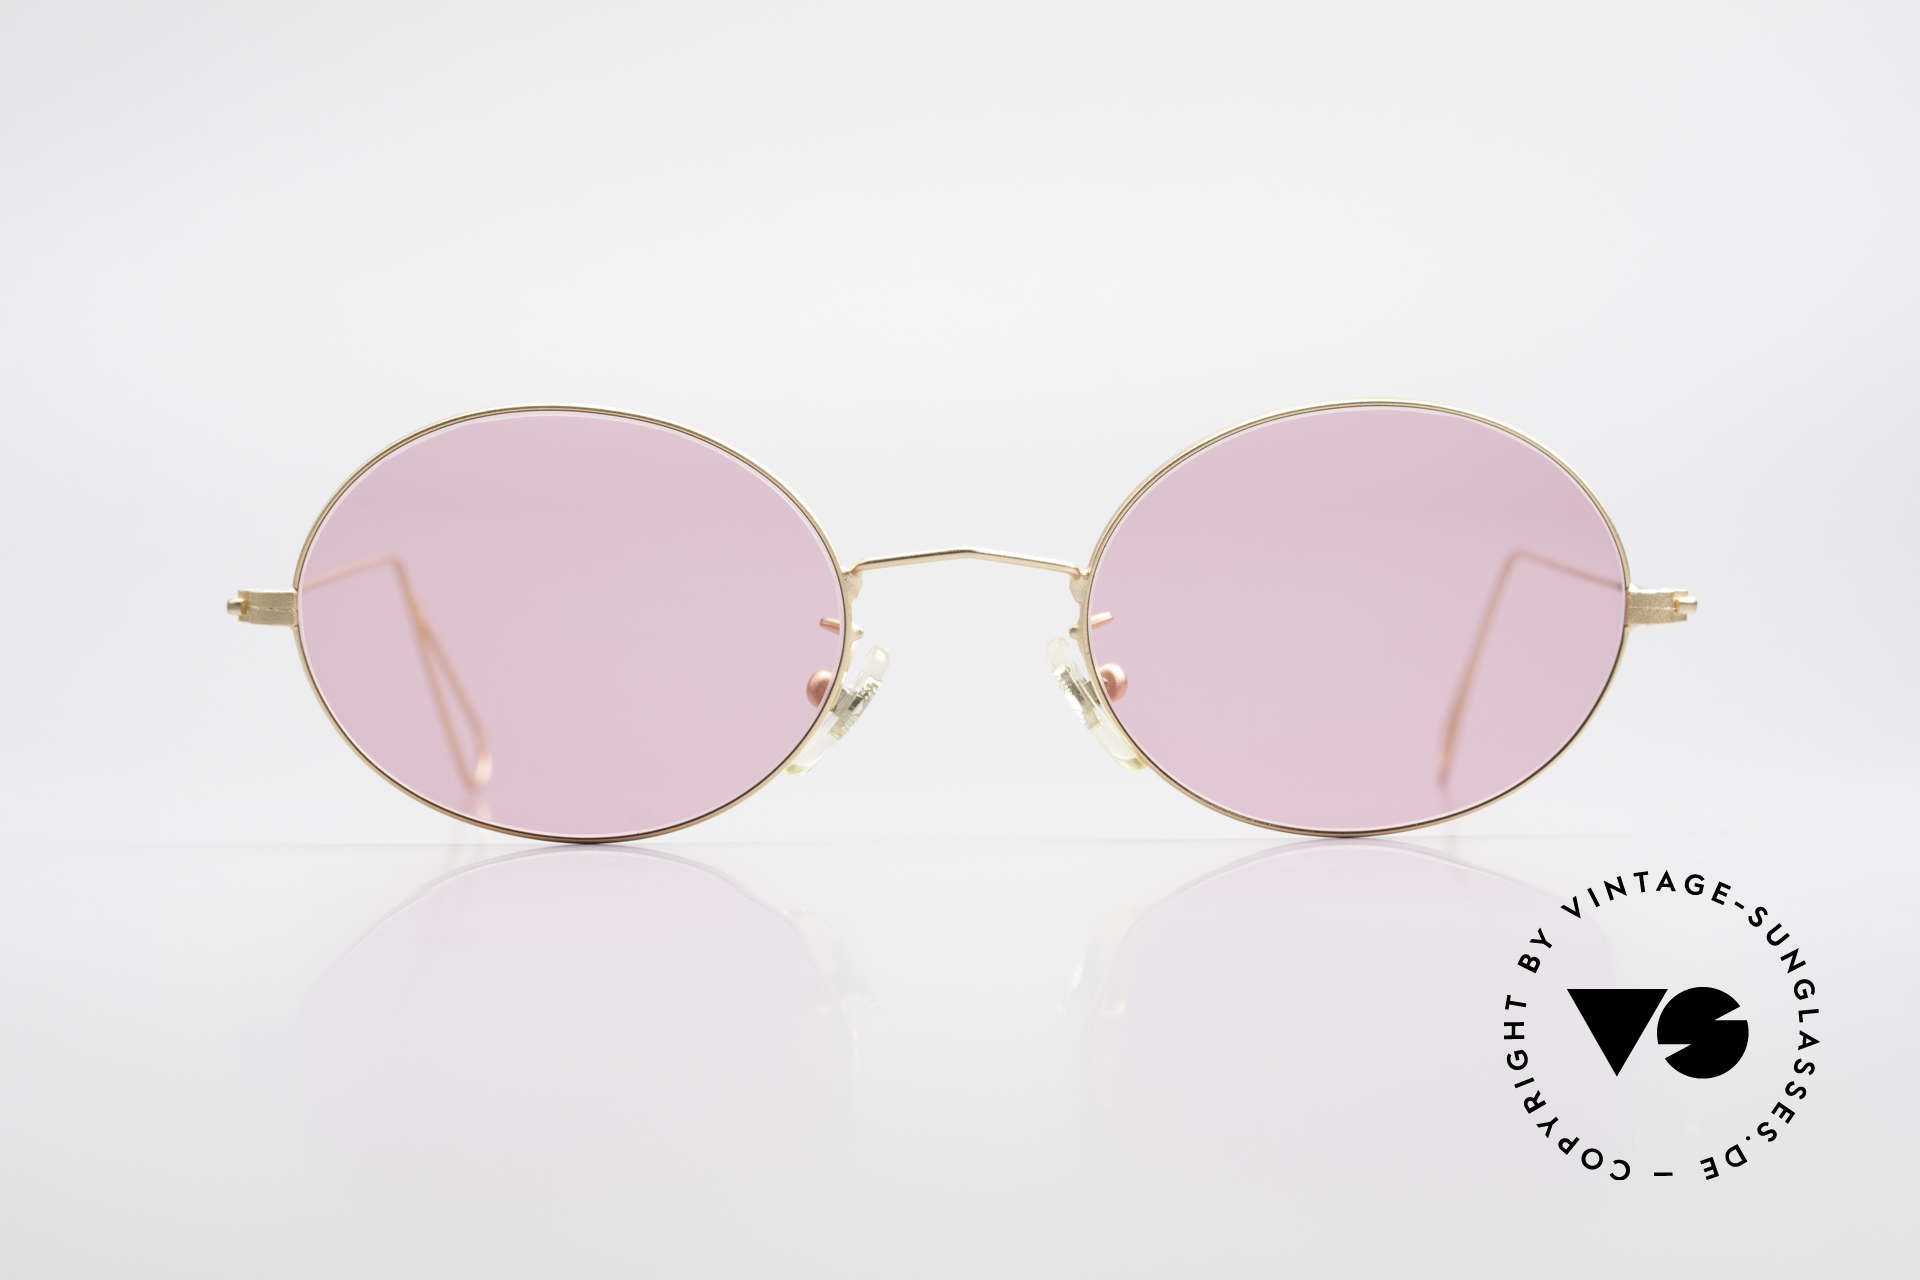 Cutler And Gross 0305 Oval Vintage 90's Sunglasses, classic, timeless UNDERSTATEMENT luxury sunglasses, Made for Men and Women